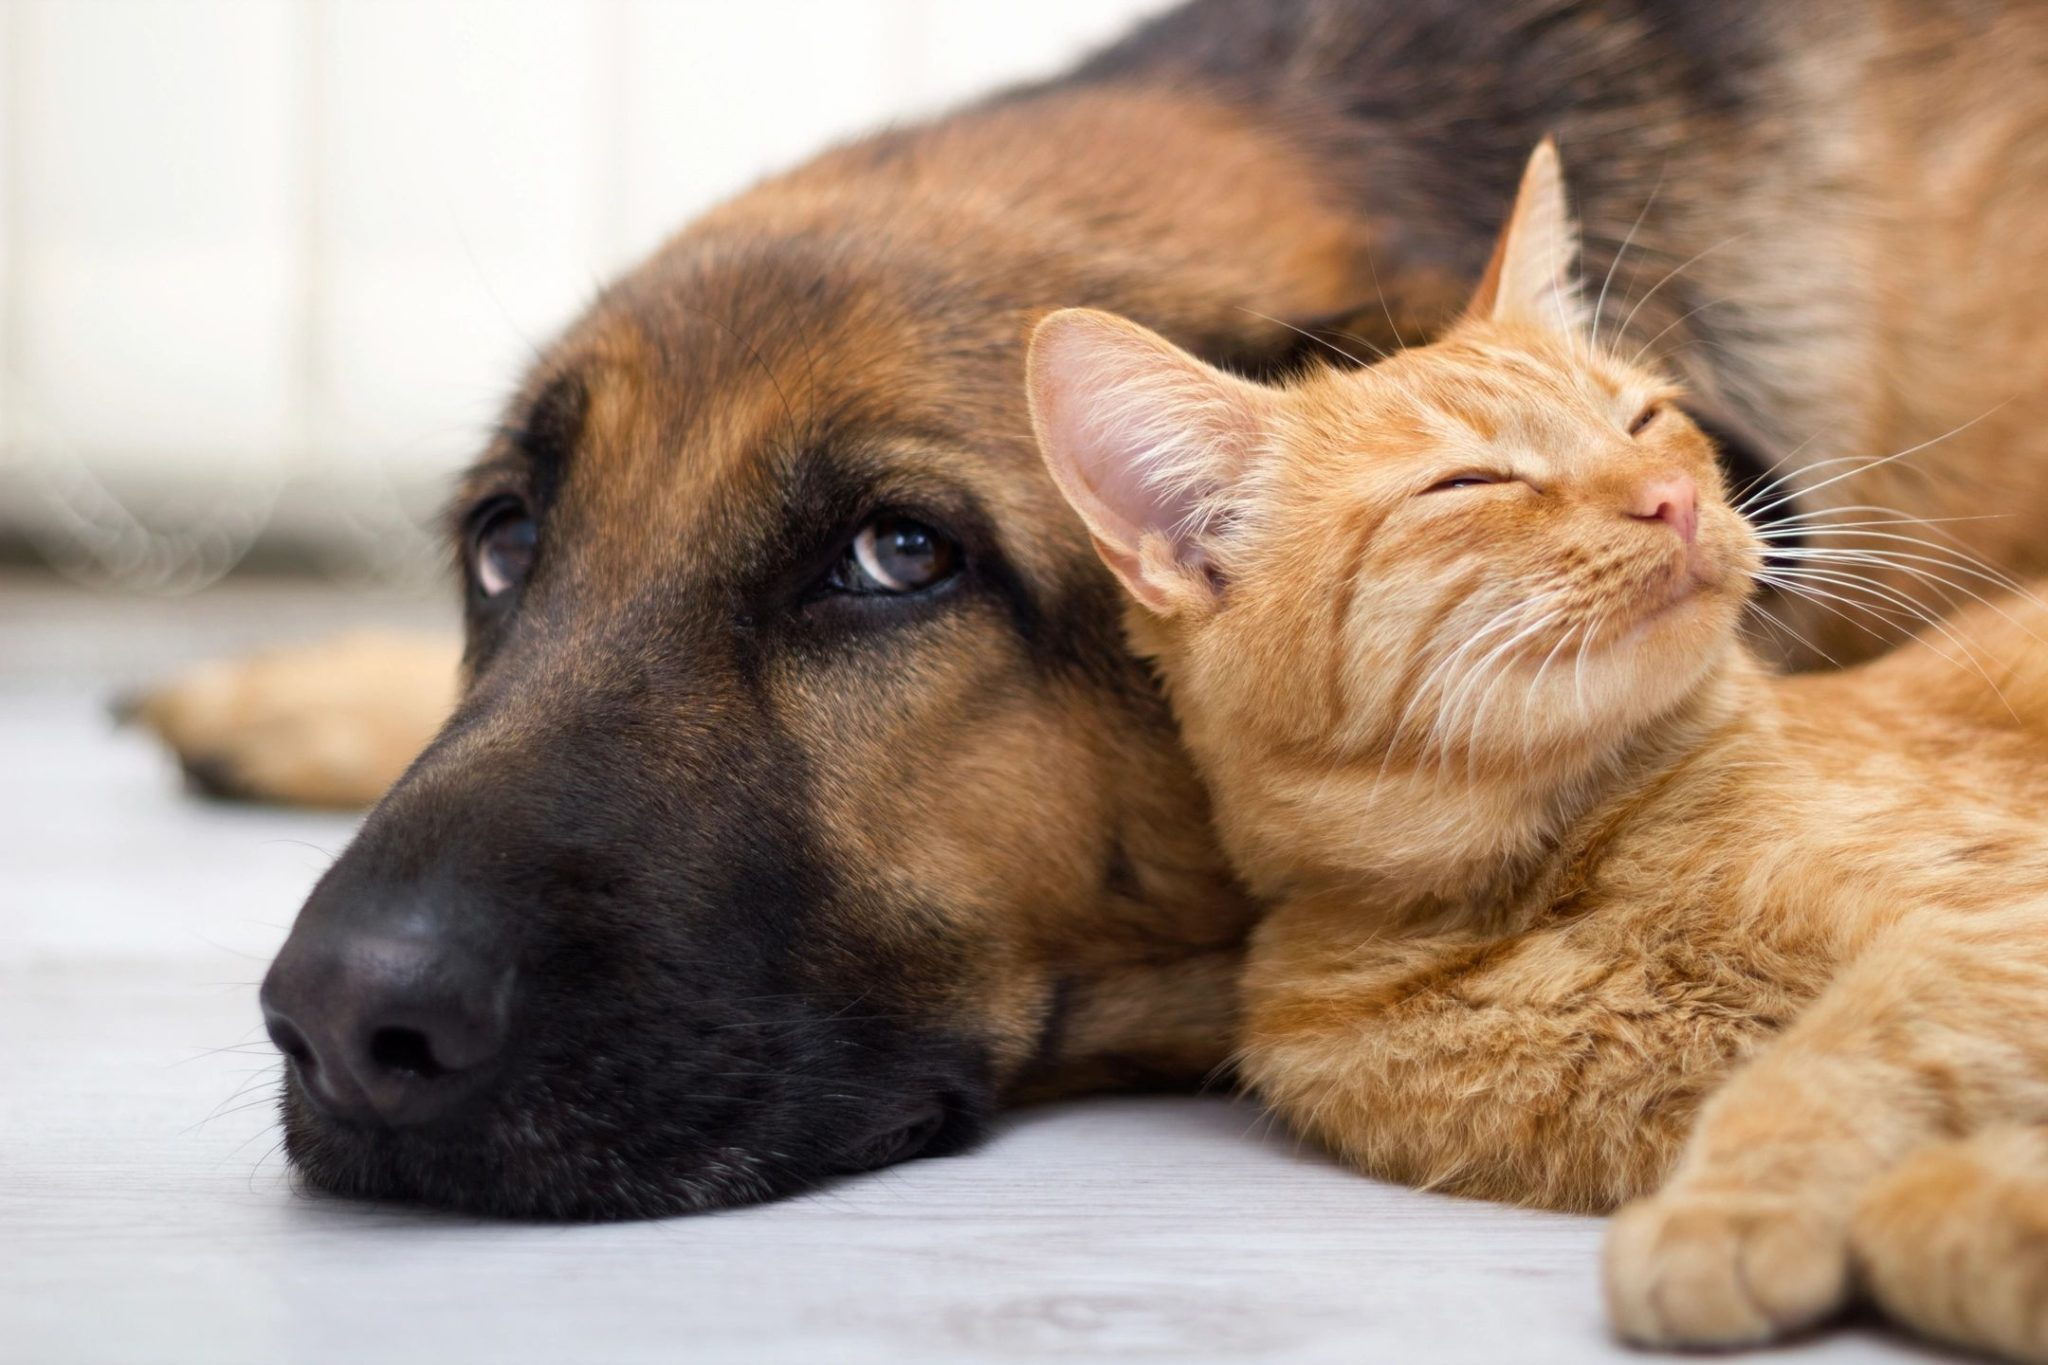 Dog and cat together flea free